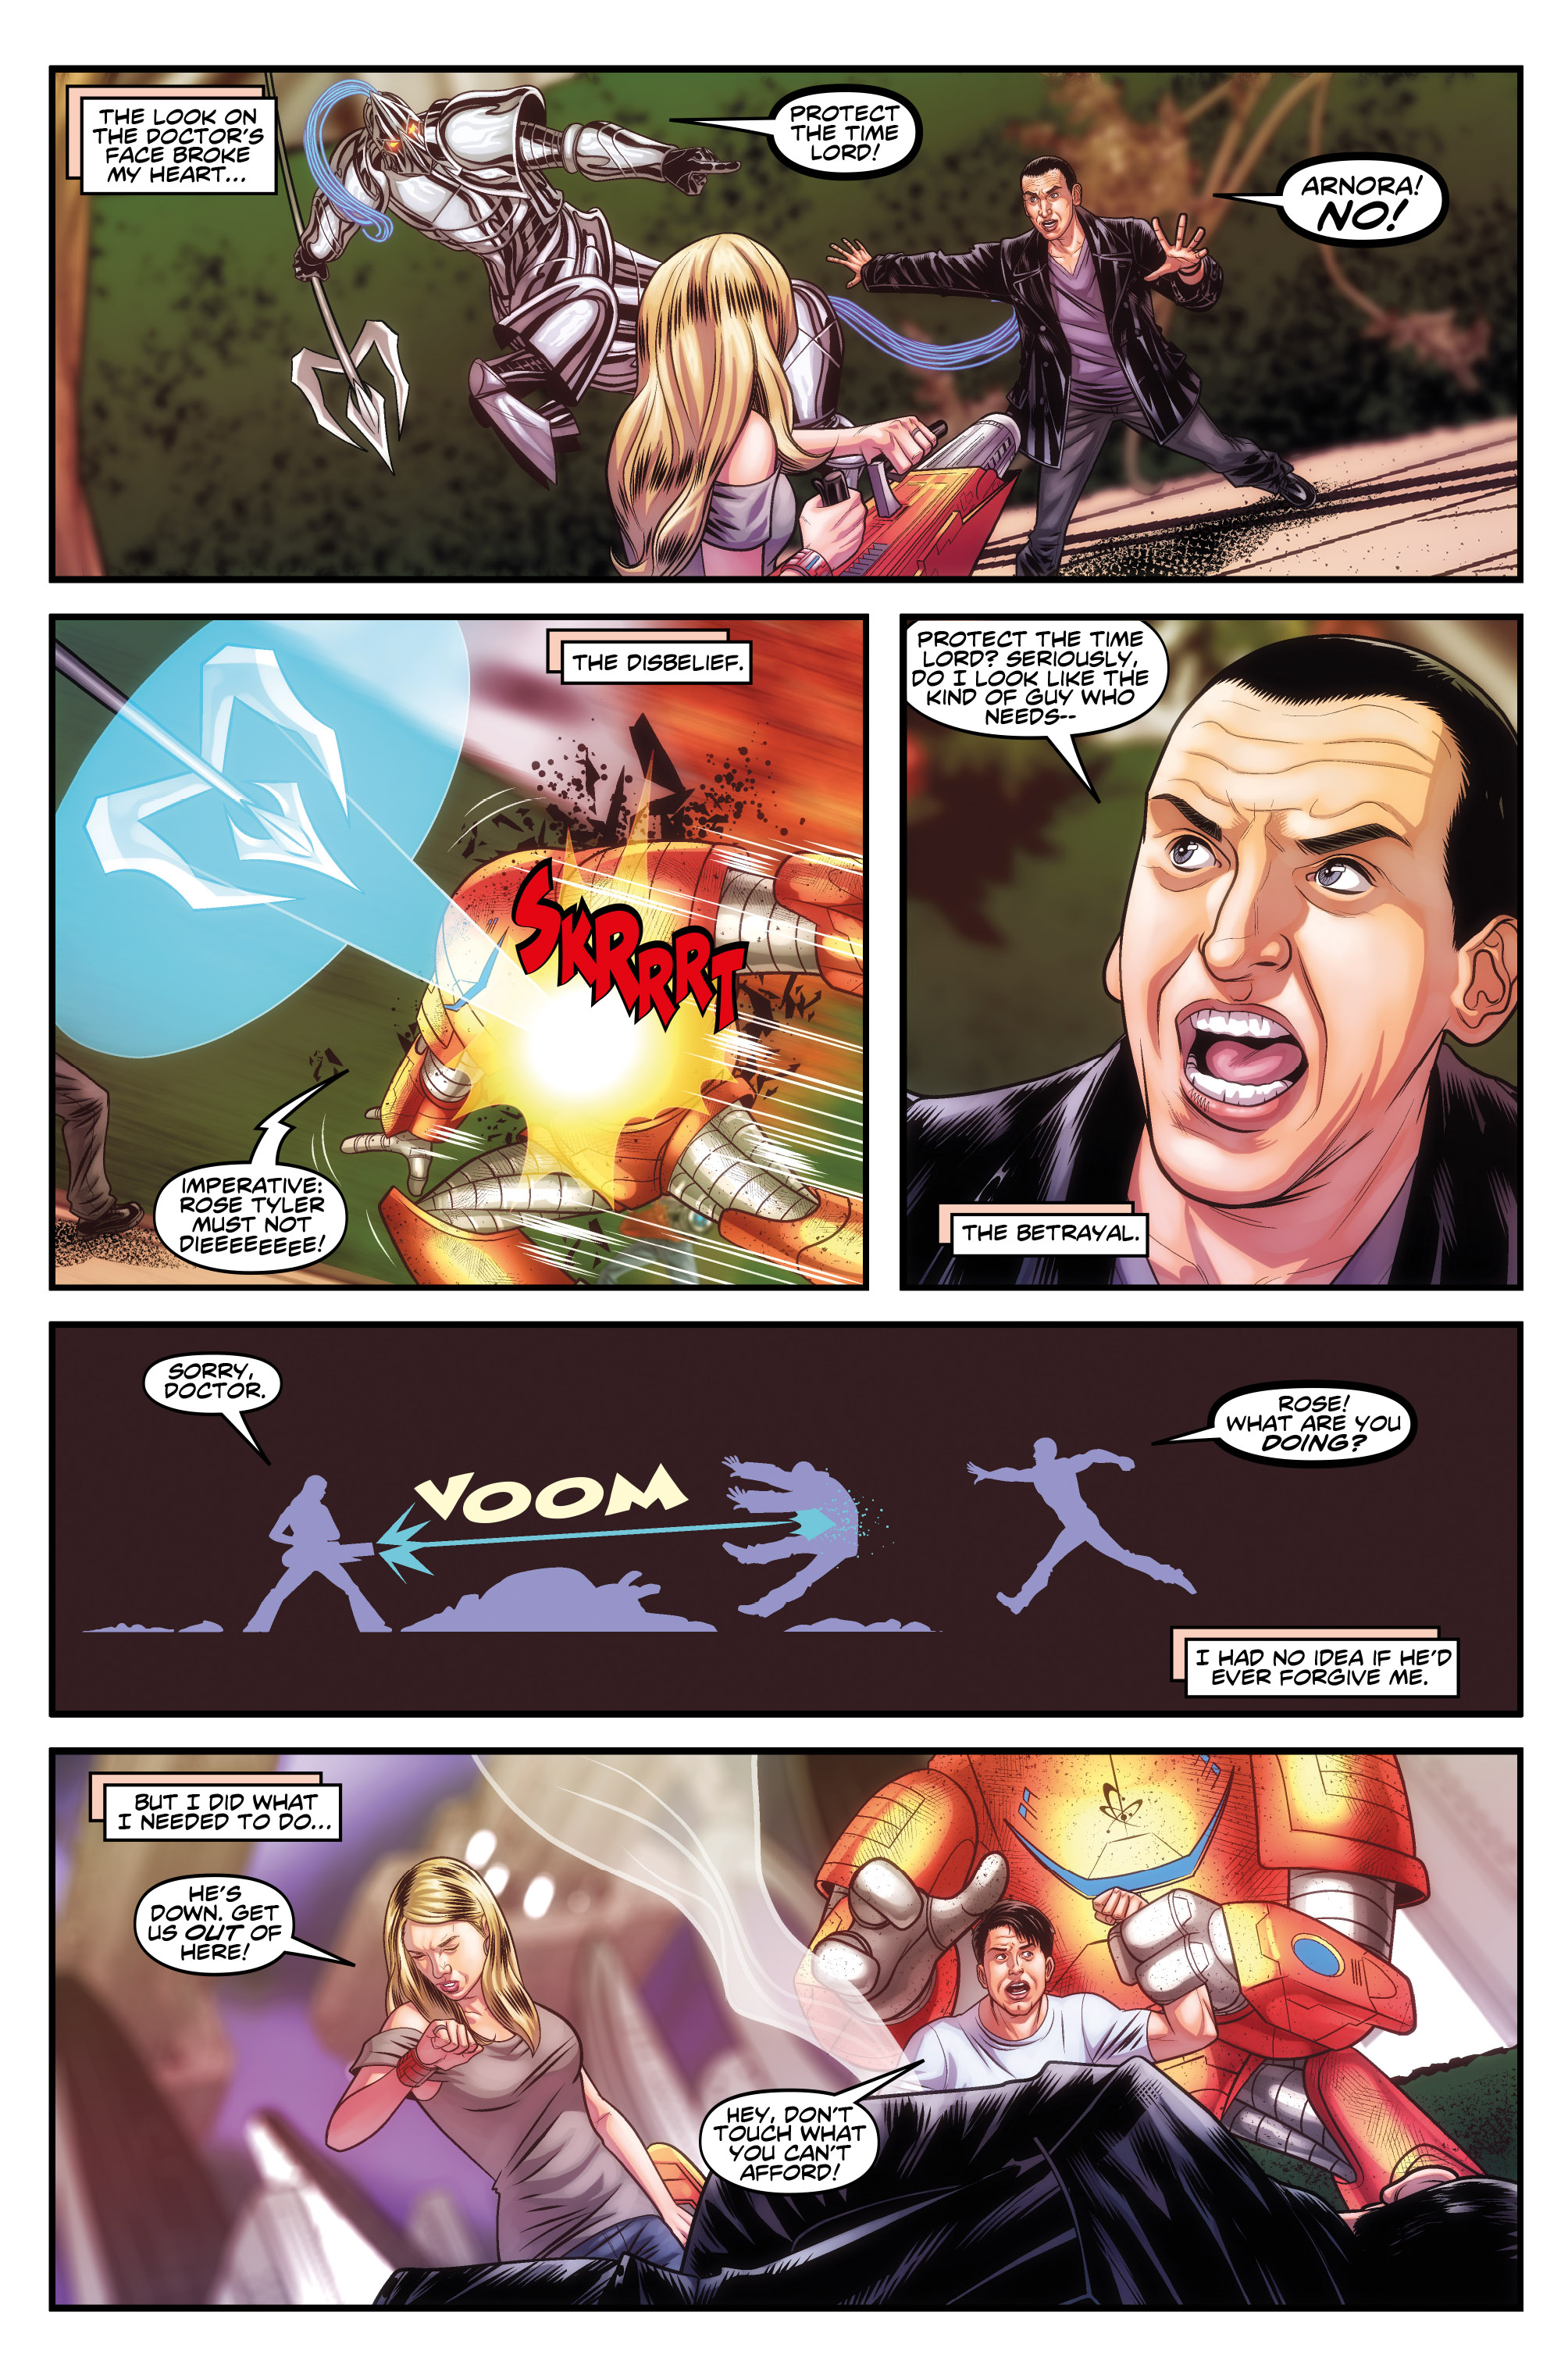 DOCTOR WHO: THE NINTH DOCTOR MINISERIES #5 (Credit: Titan)